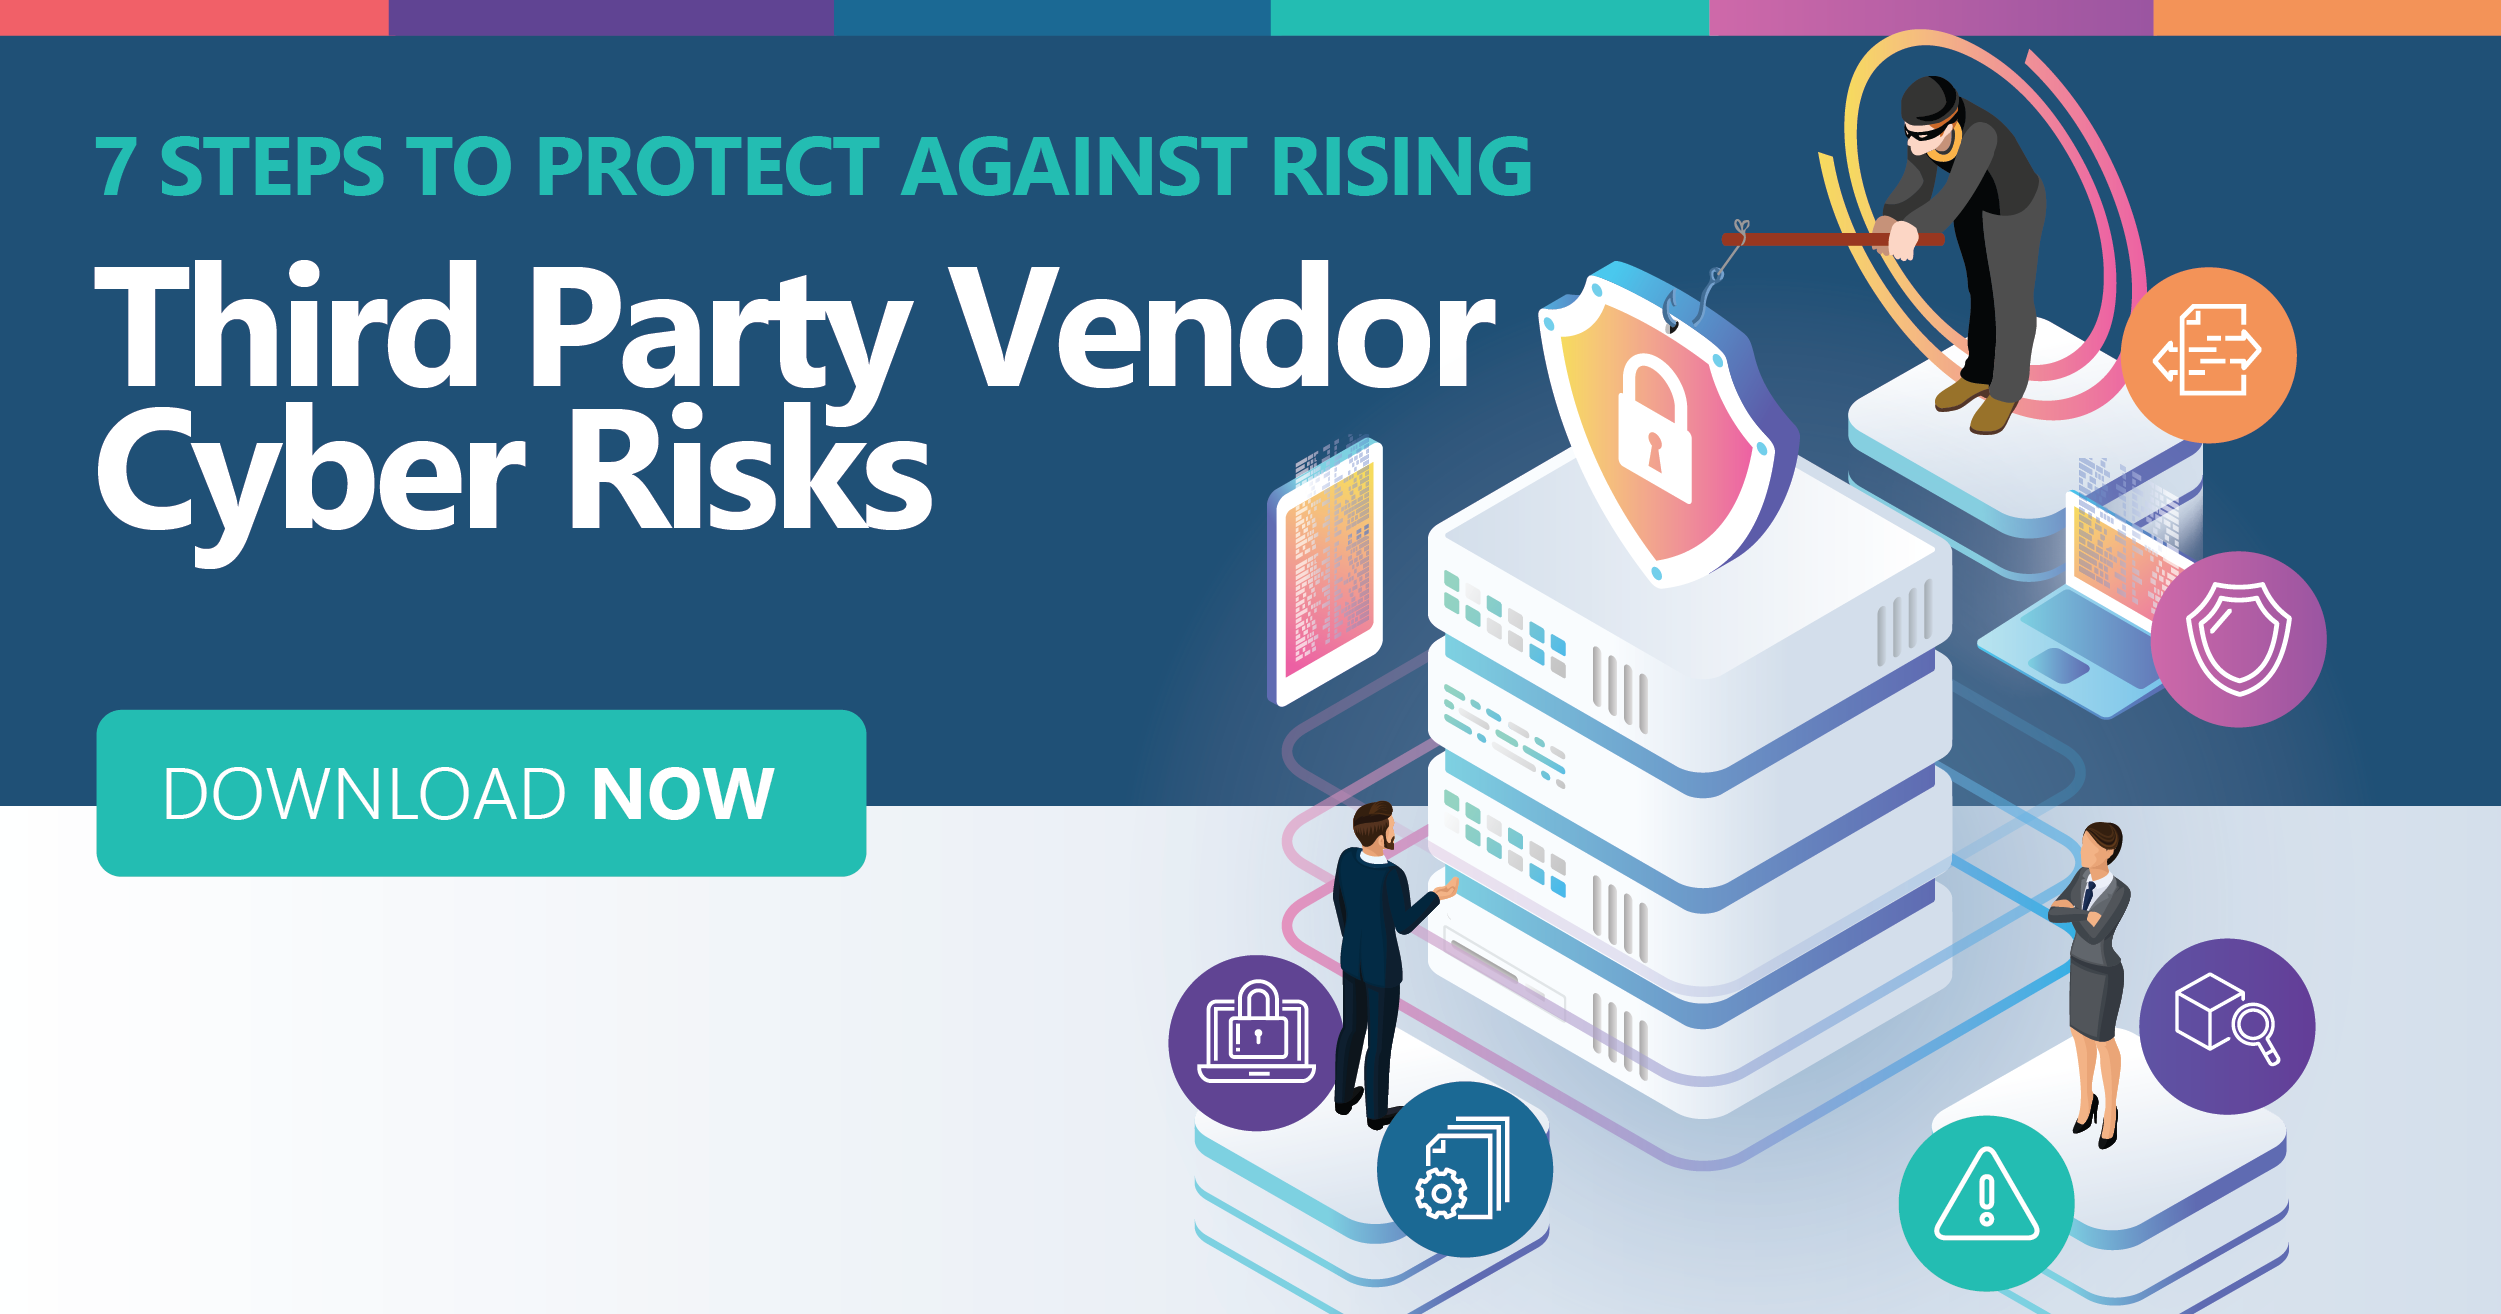 steps-to-protect-against-rising-third-party-vendor-cyber-risks